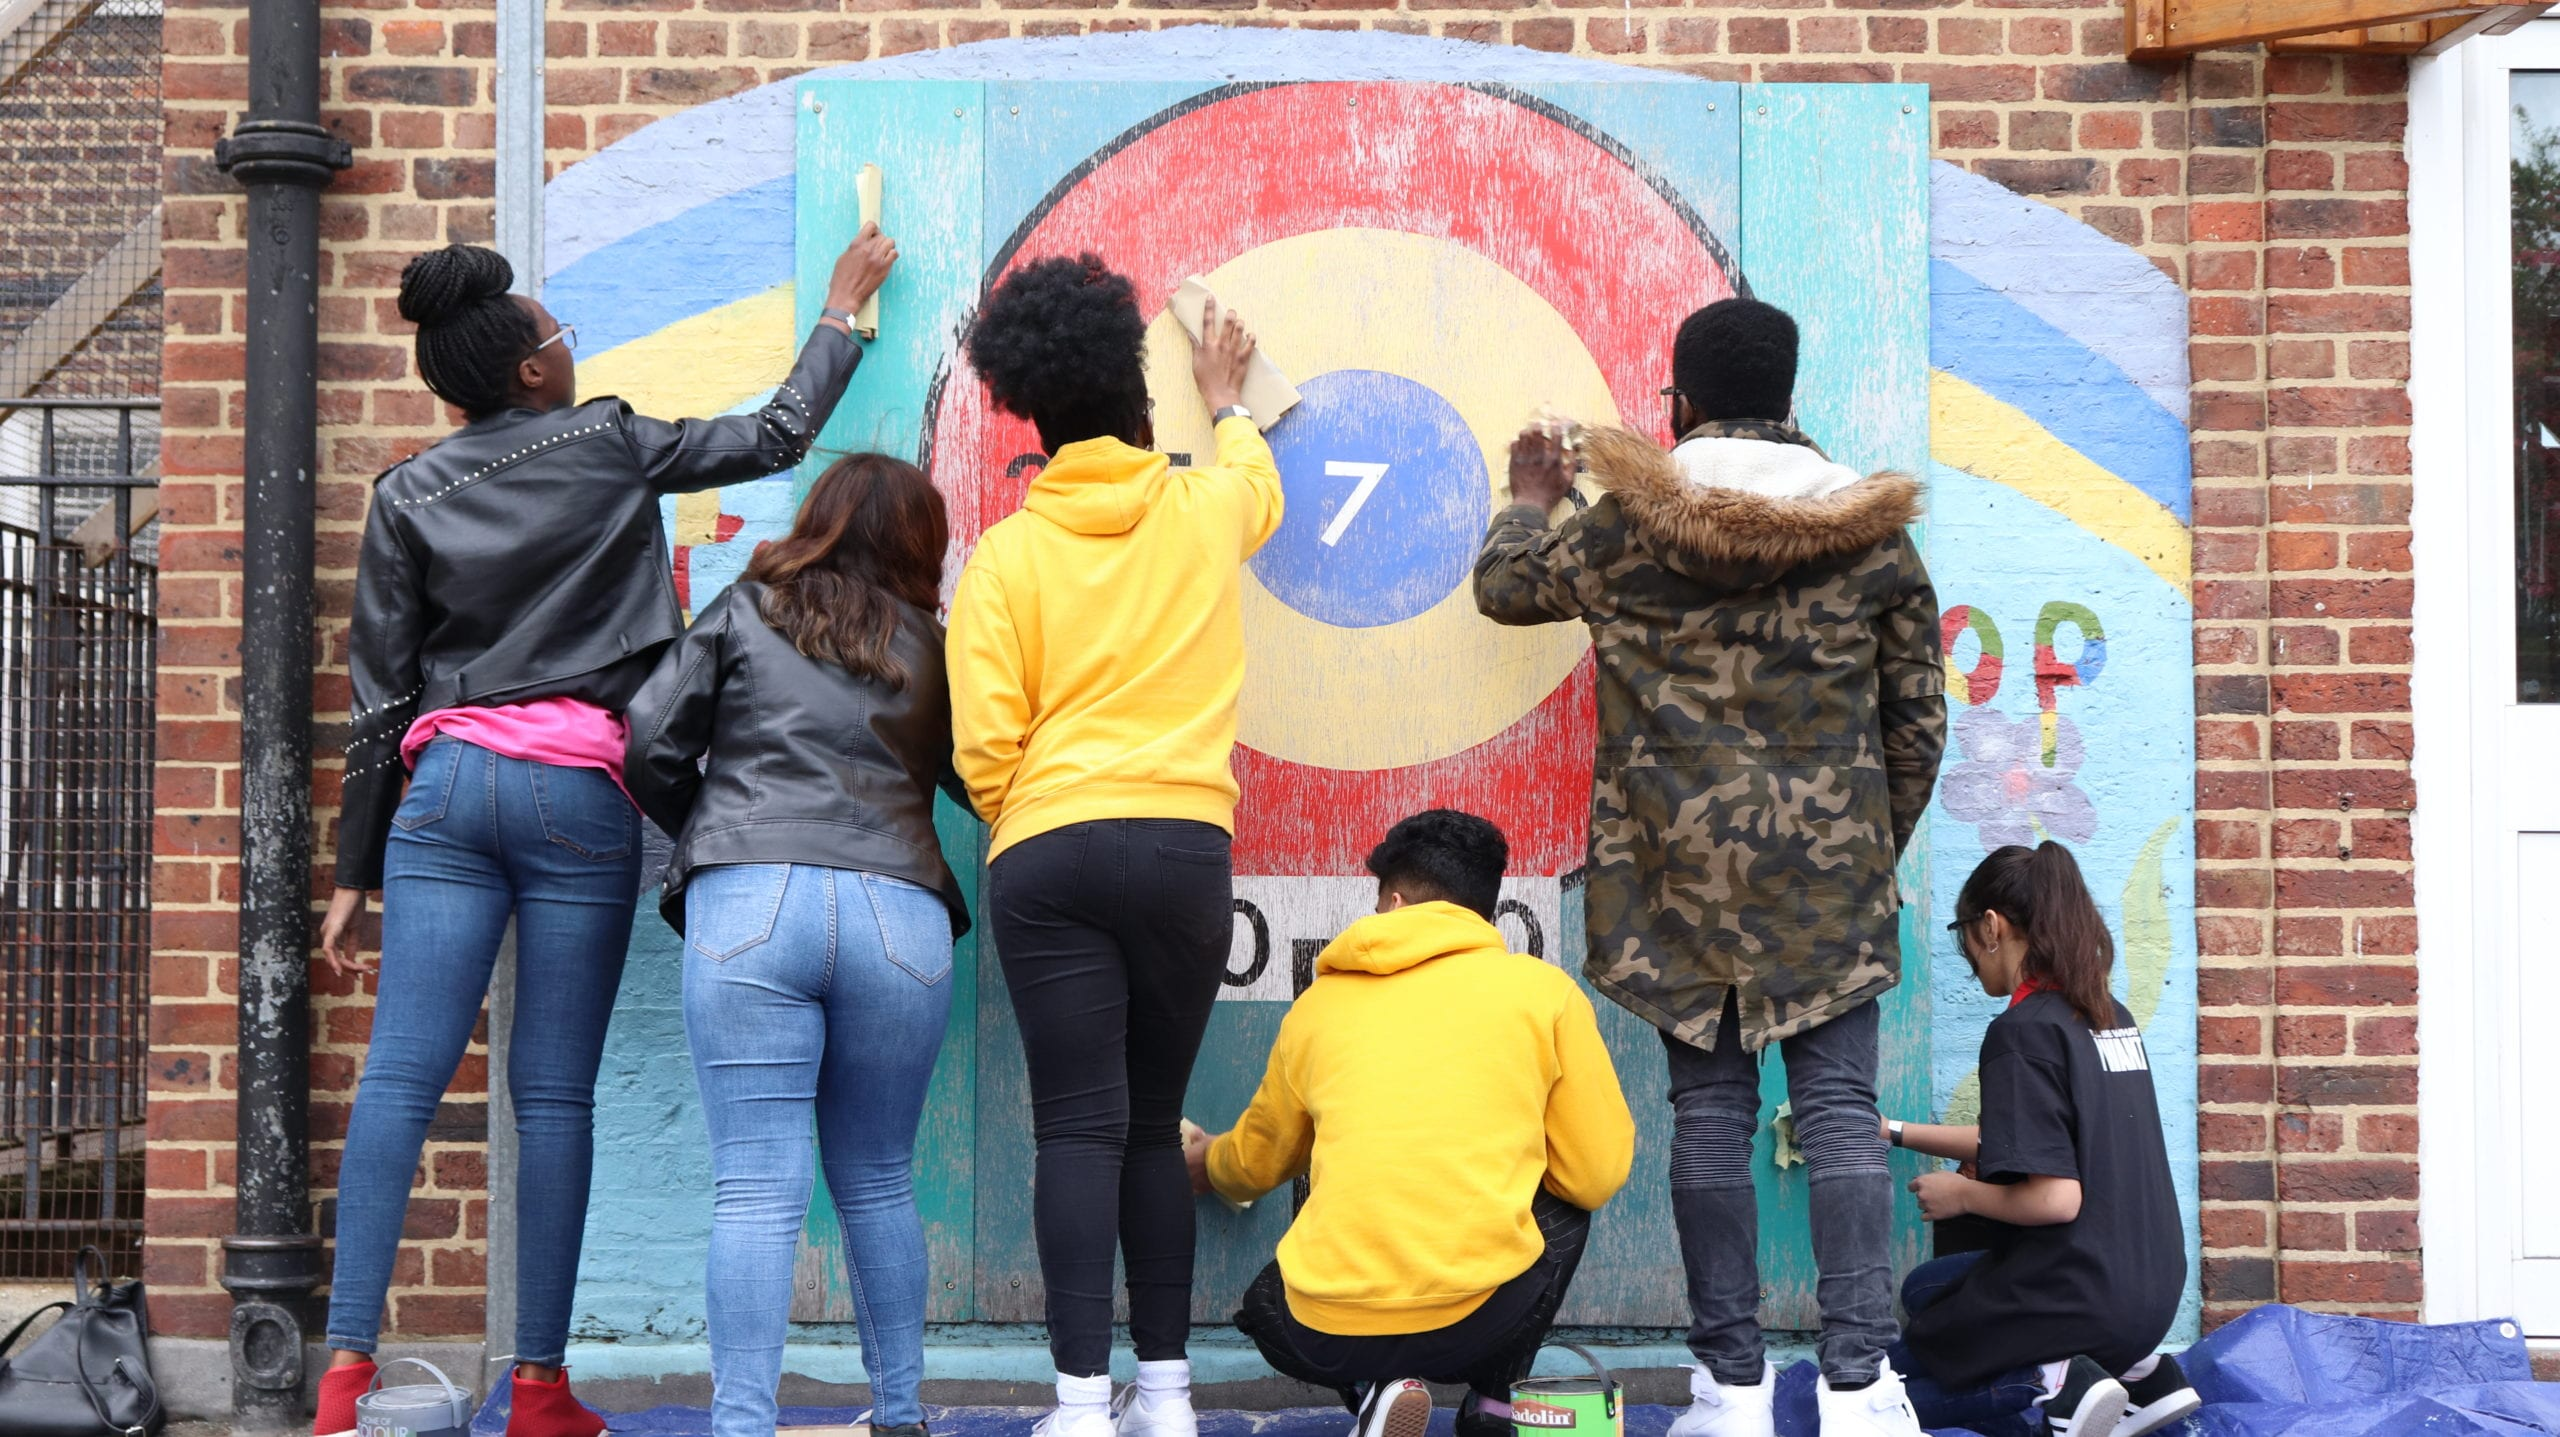 Young people getting involved in social action and painting a community wall.